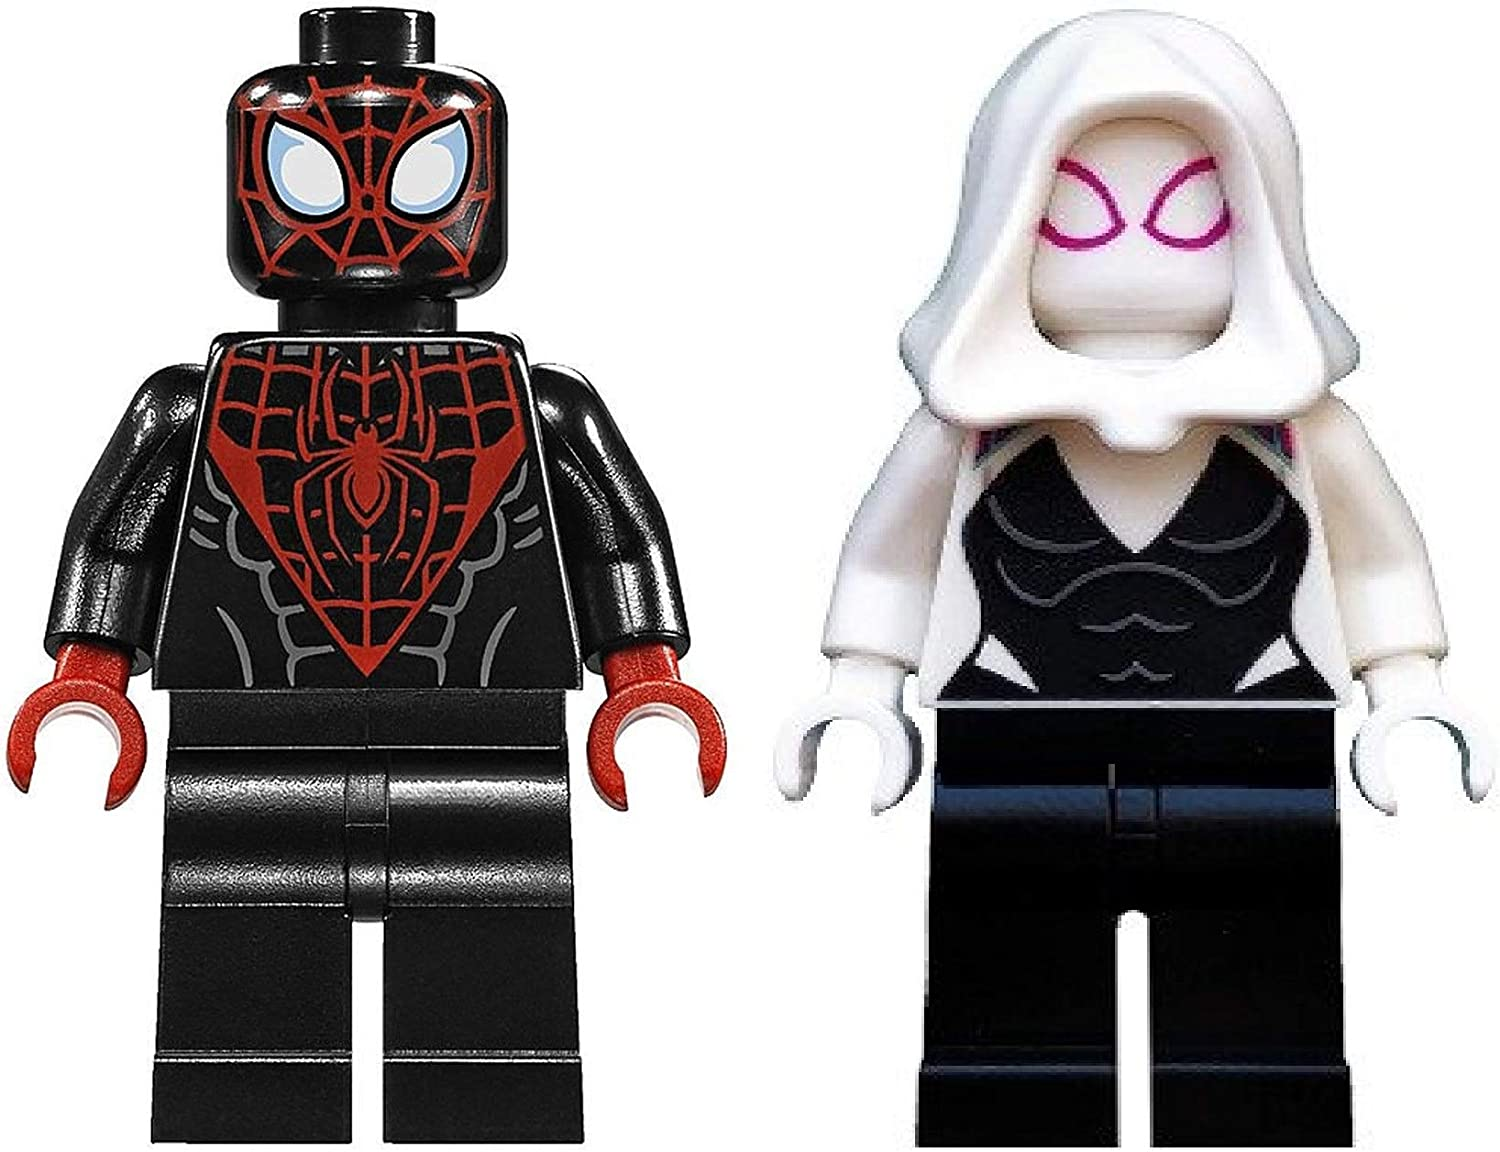 LEGO Superheroes: Miles Morales and Gwen Stacey (Ghost Spider)